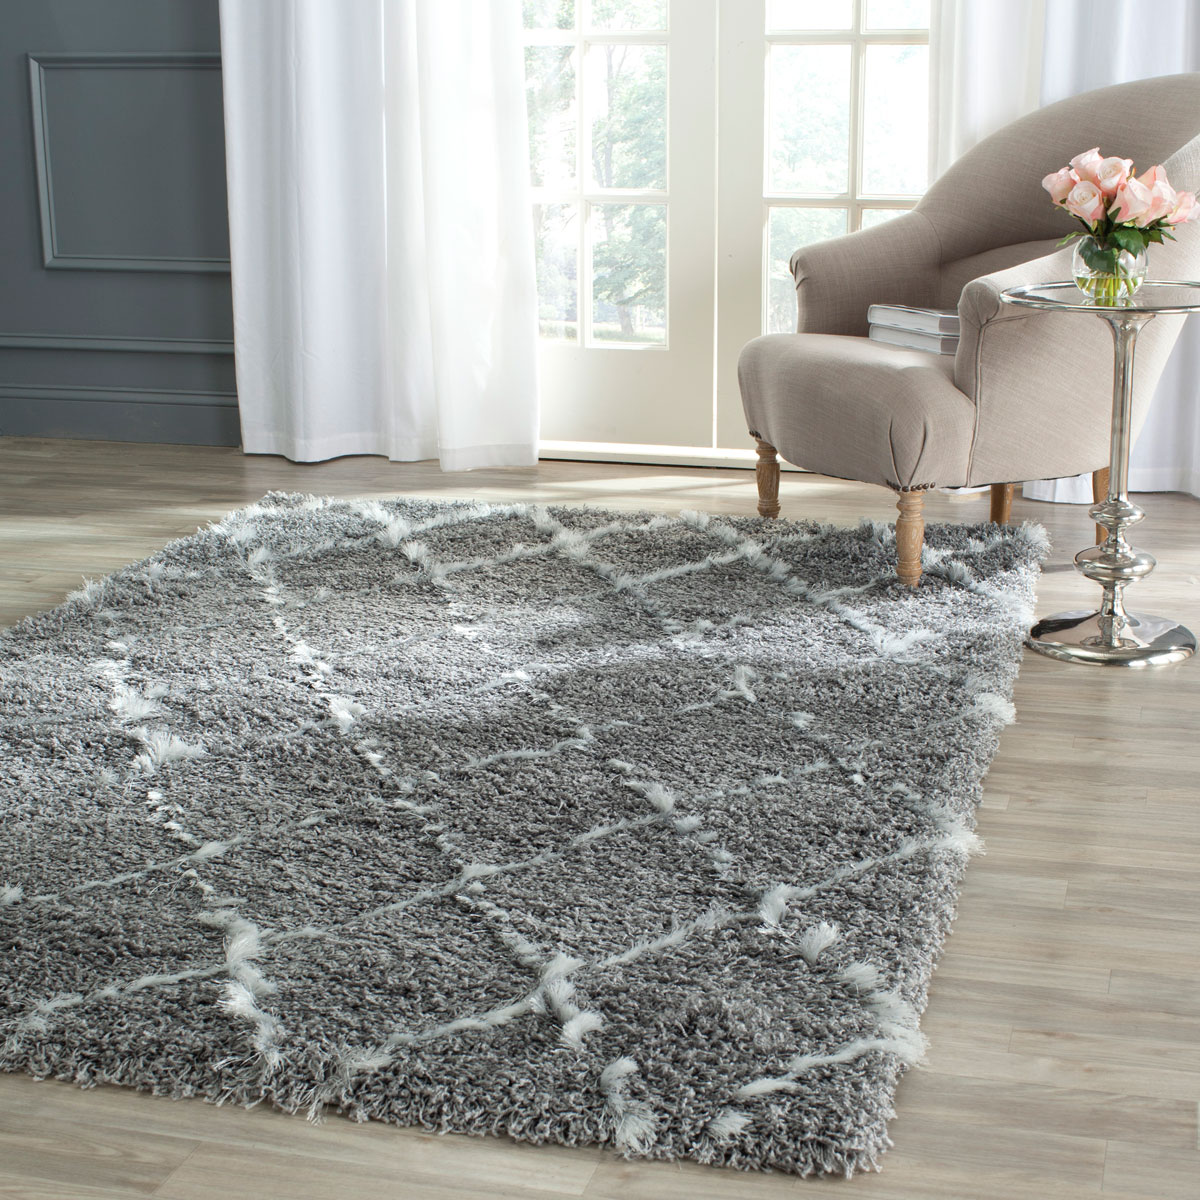 Pretty Marrakesh Shag Rug Designs | Breathtaking Tuscan Moroccan Rug